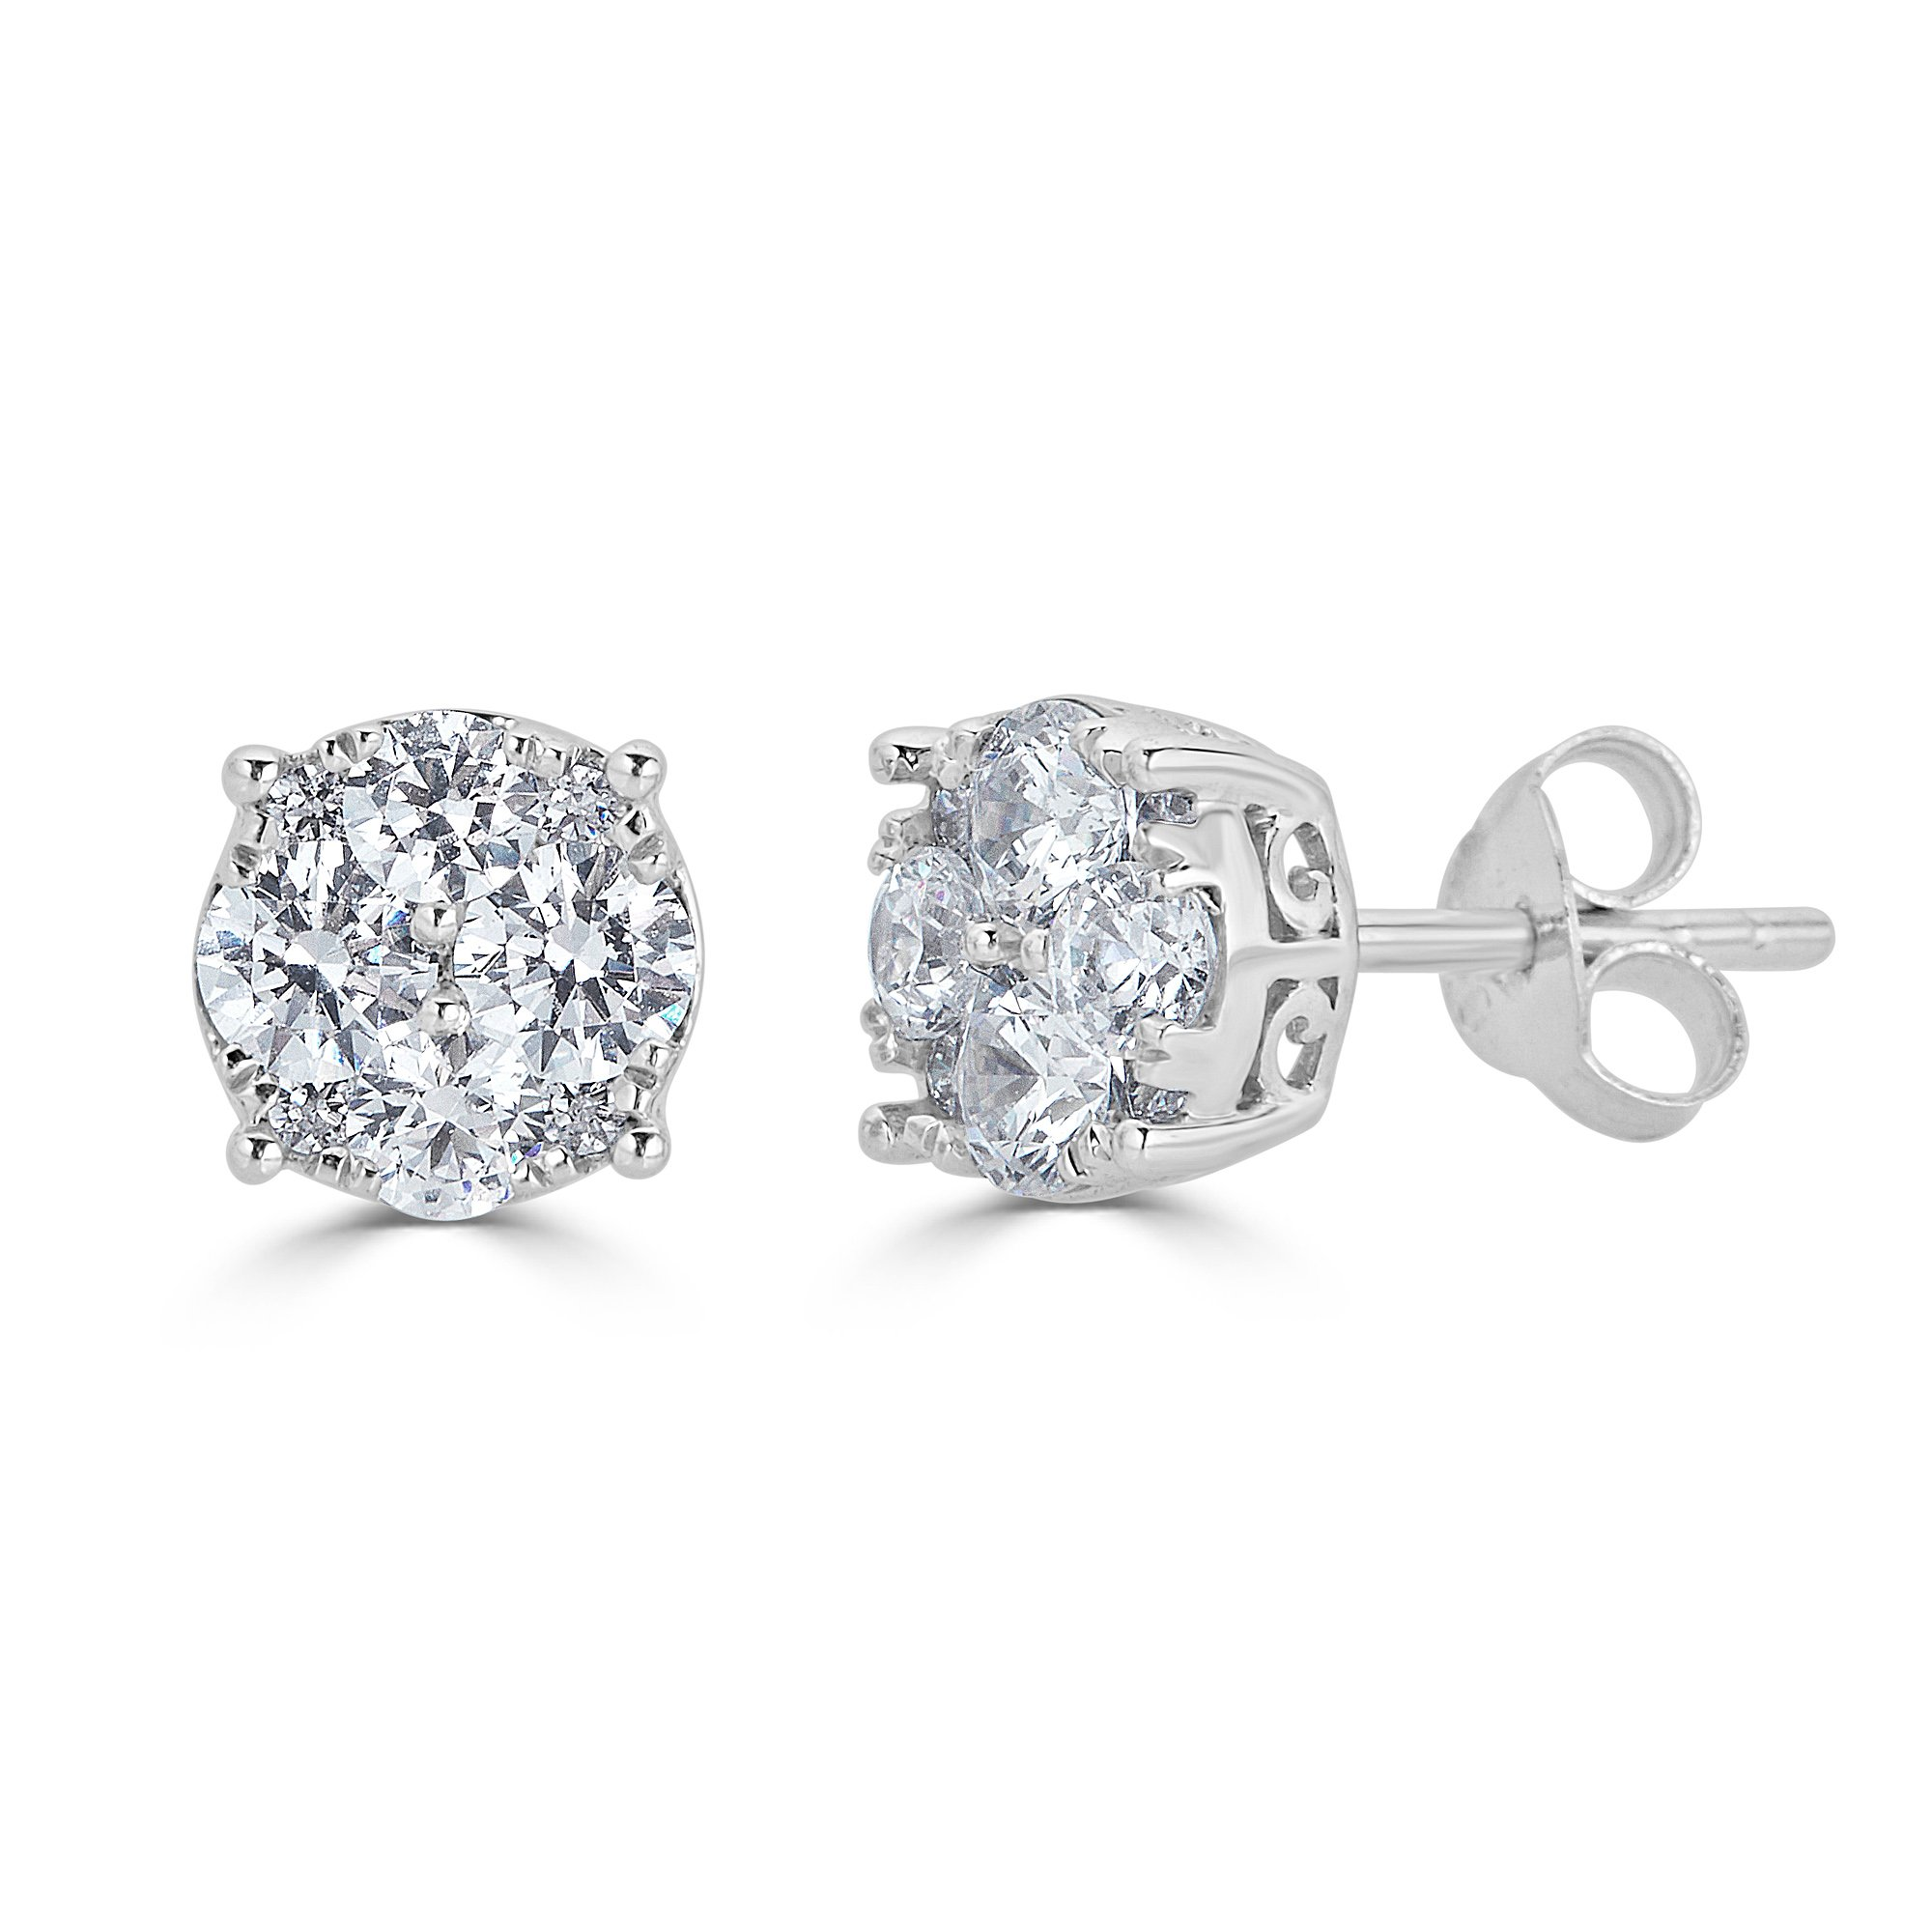 1.00Ct Natural Diamond Stud Earrings Set in Sterling Silver by Fifth and Fine